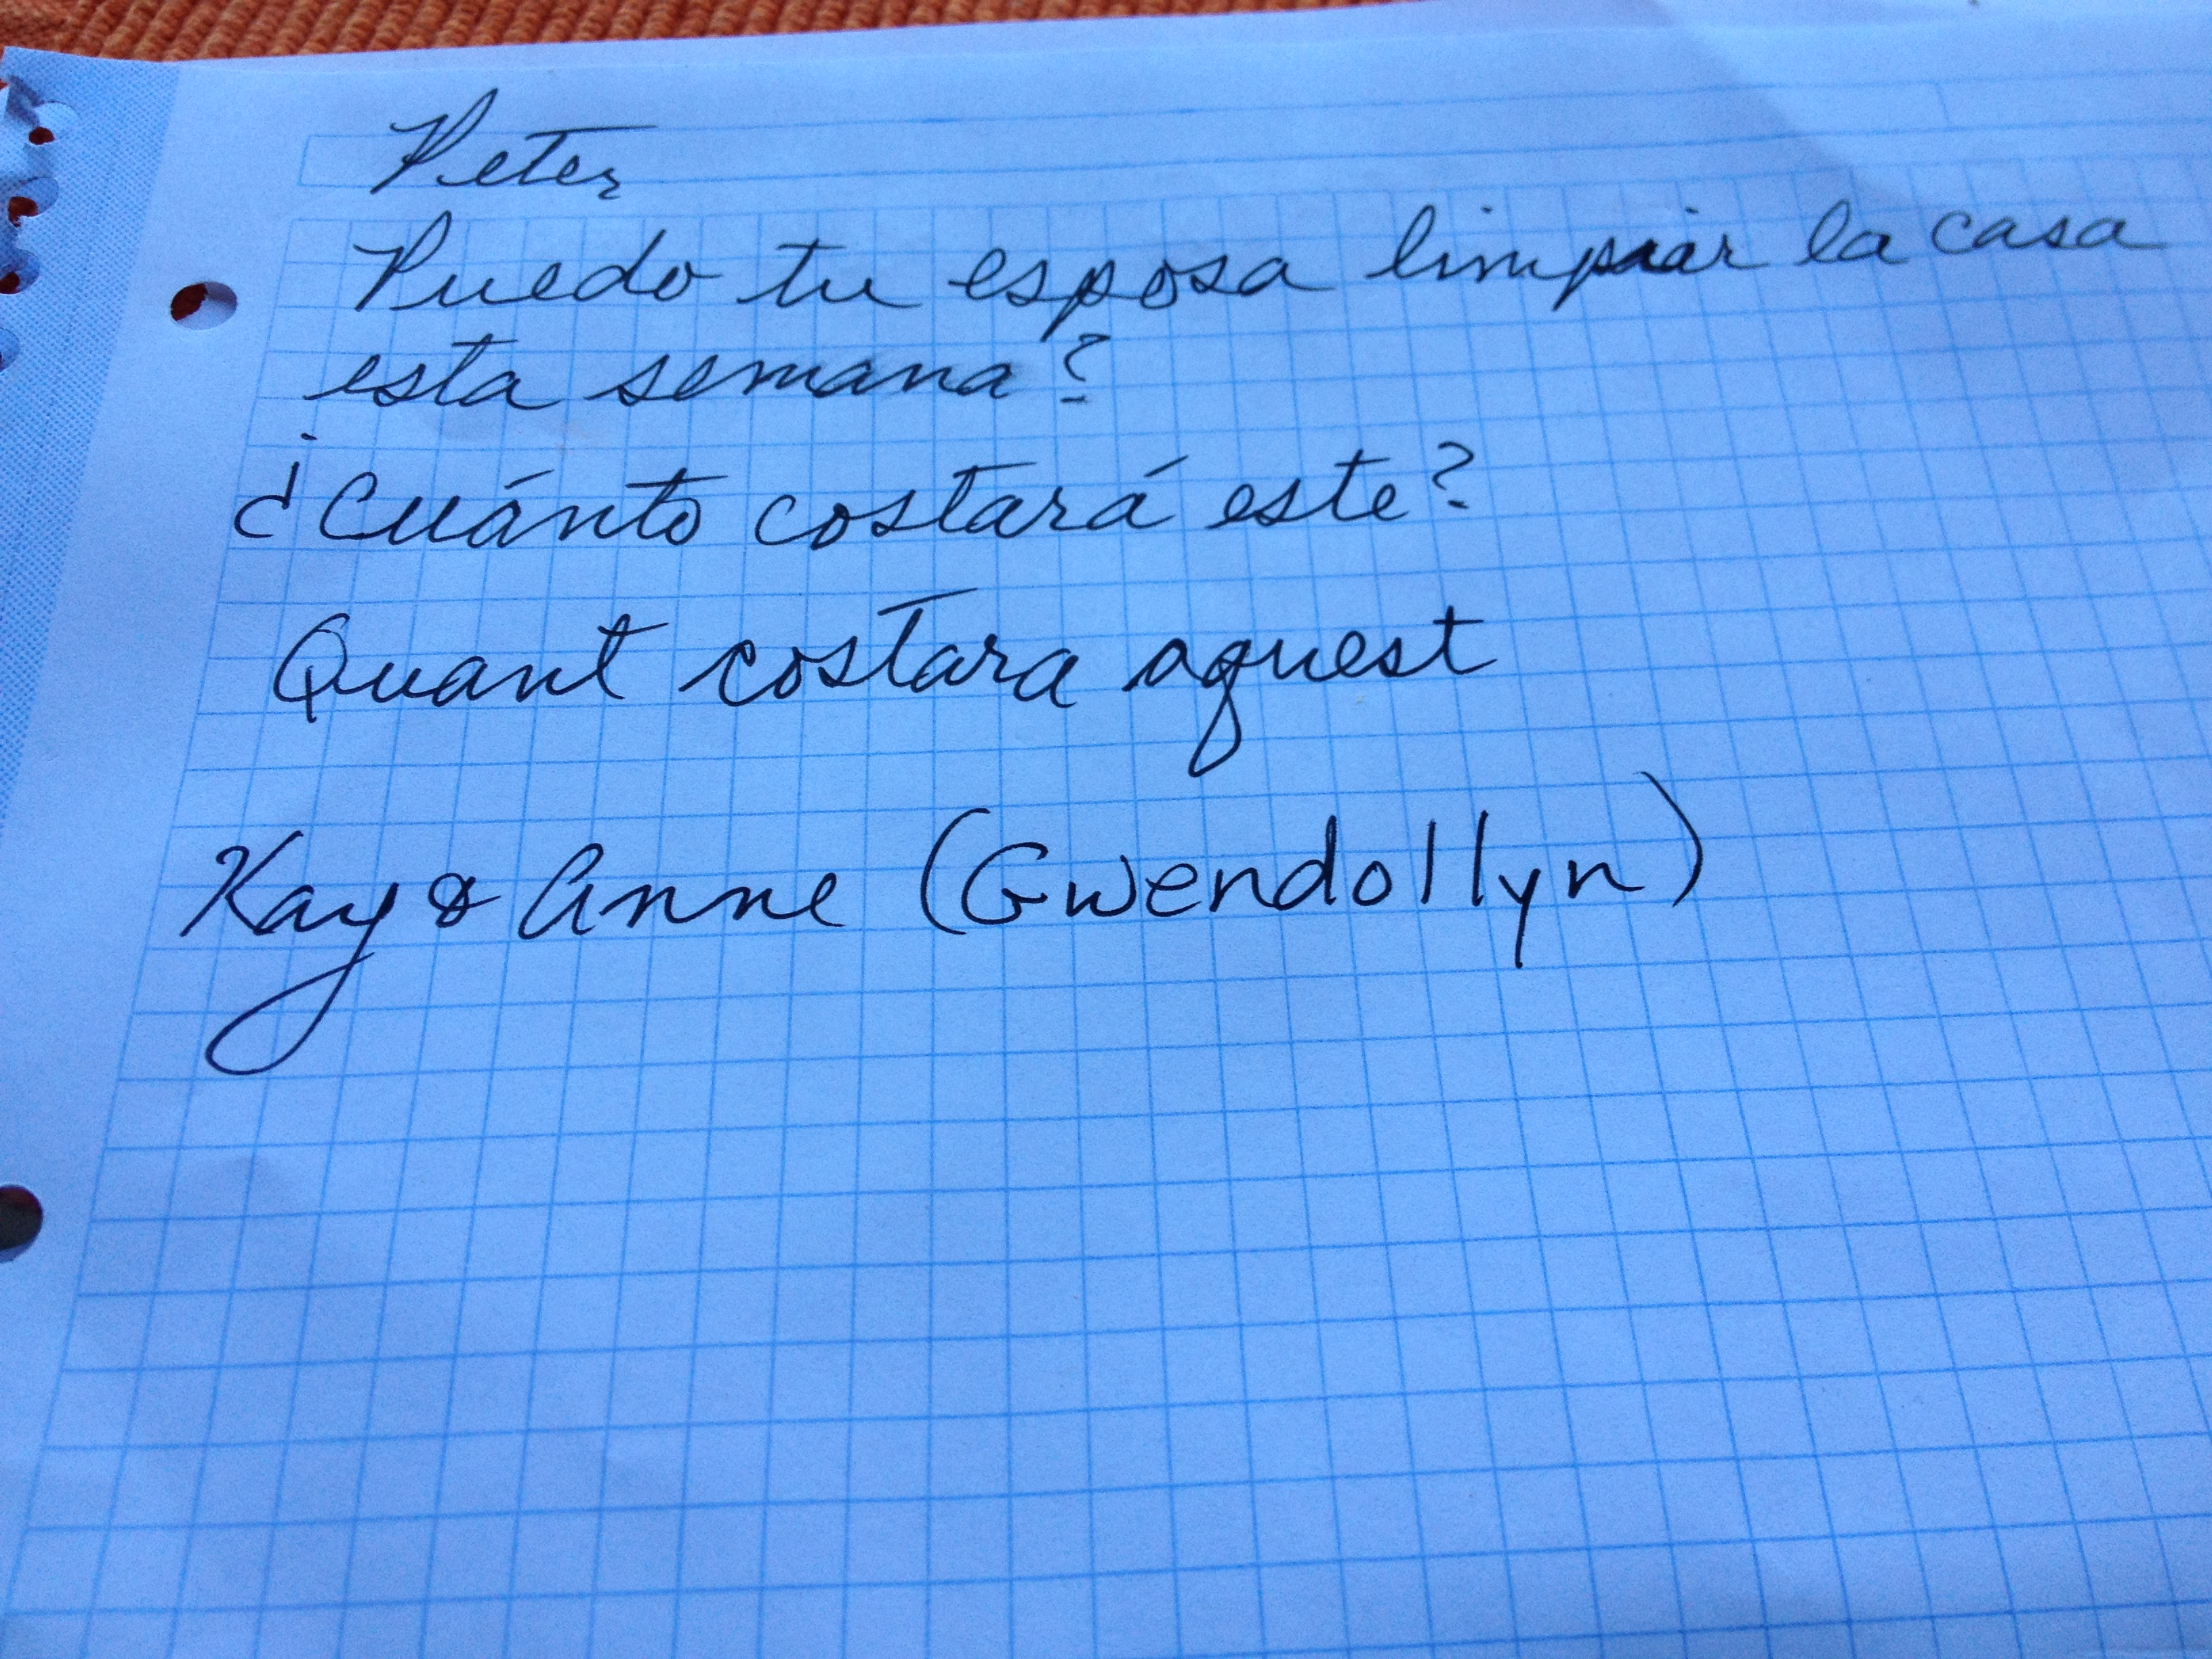 Pathetic note written in faux Catalan